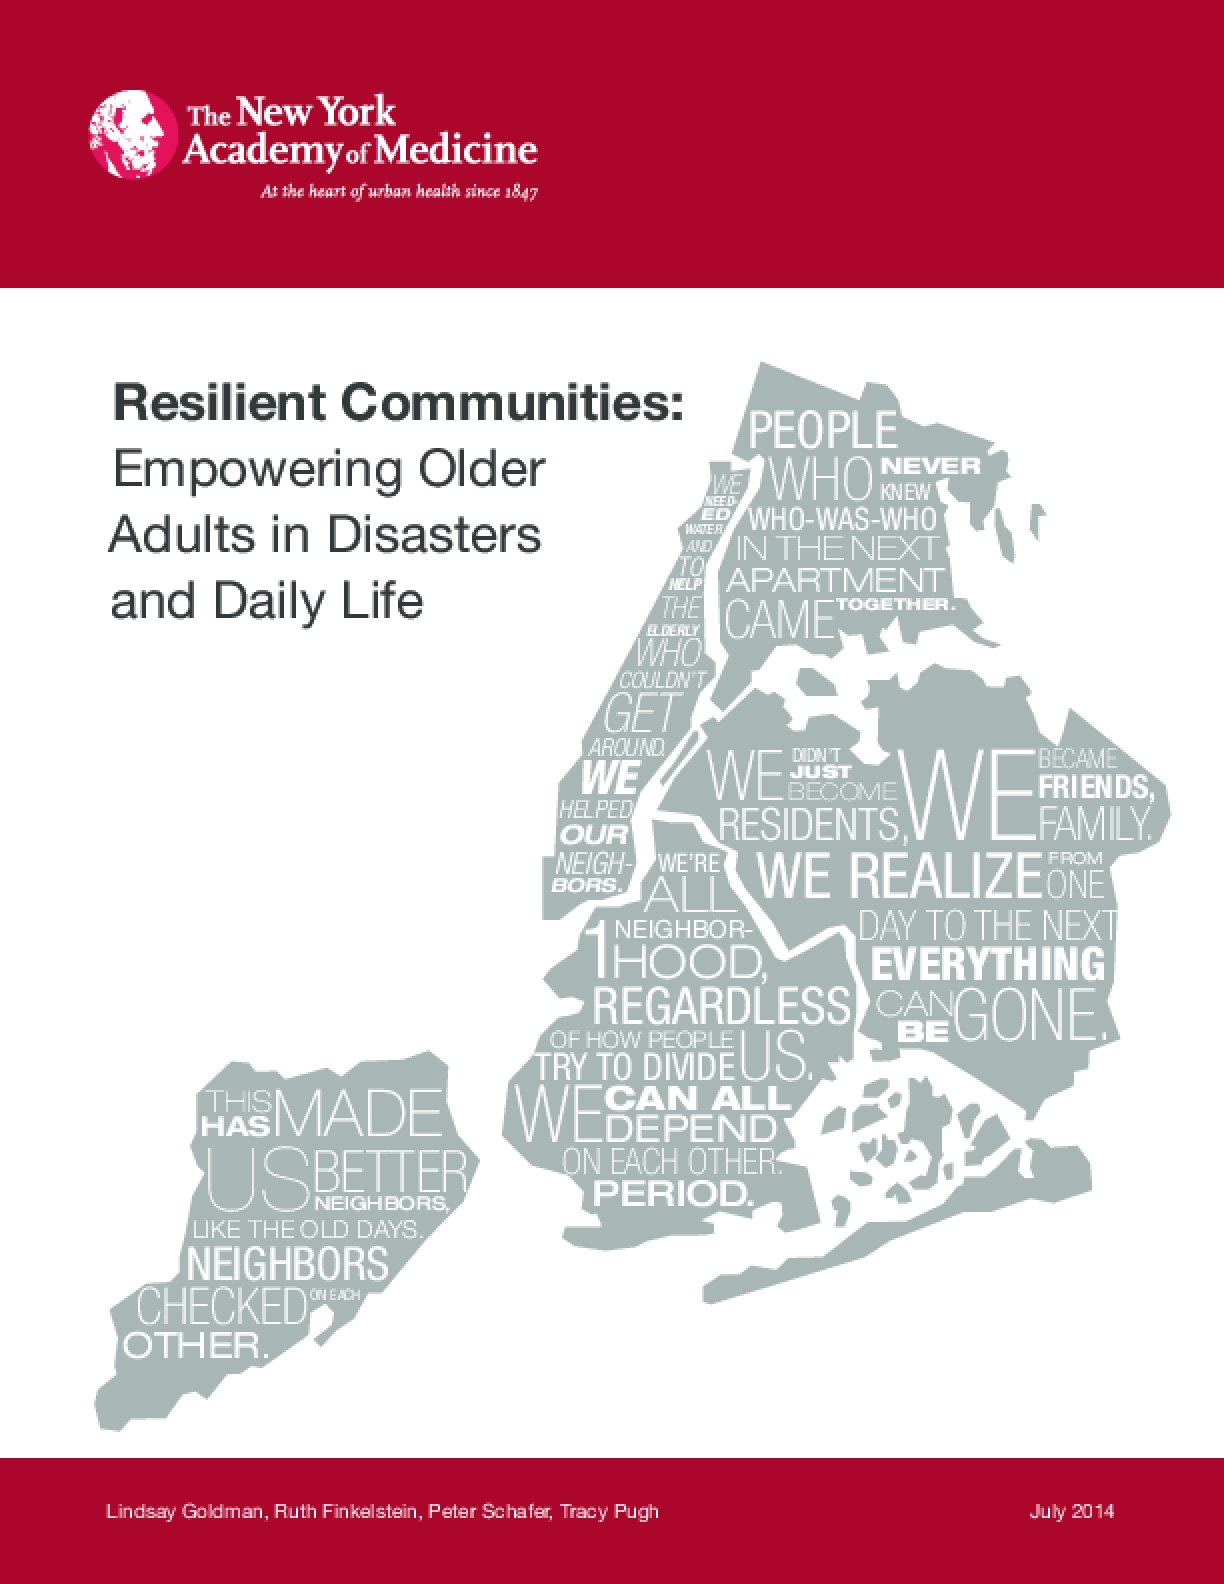 Resilient Communities: Empowering Older Adults in Disasters and Daily Life